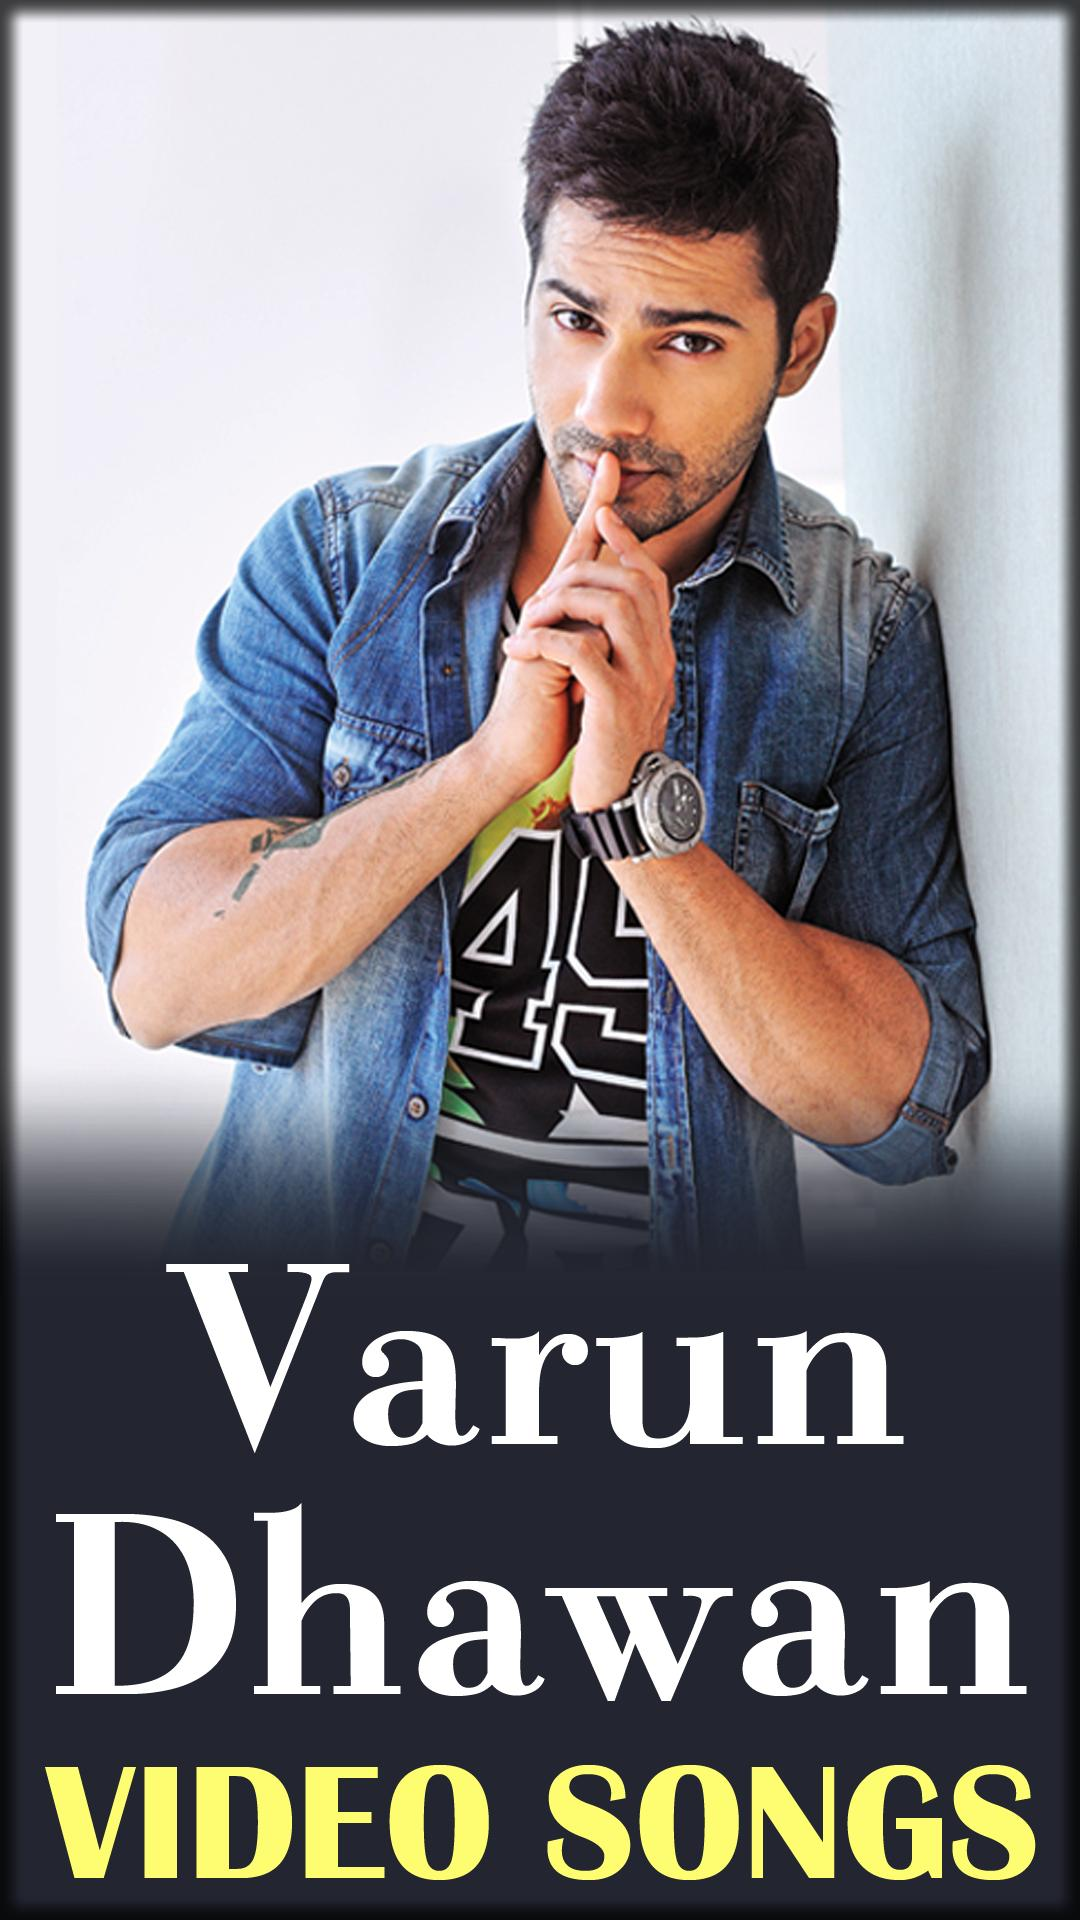 Varun Dhawan Songs App - Hindi Movie Video Songs for Android - APK Download